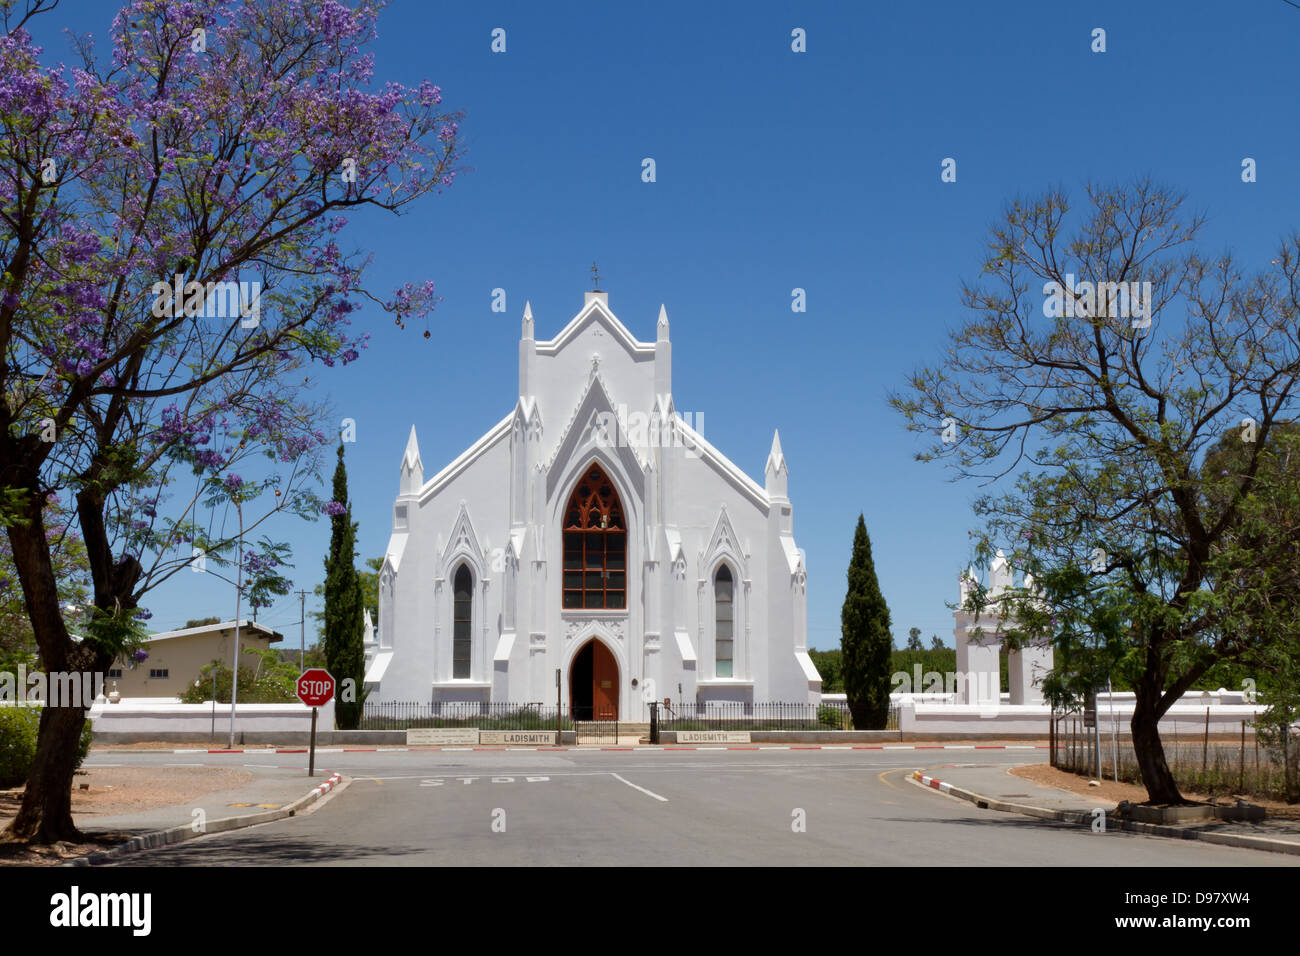 Church at Ladismith, South Africa - Stock Image